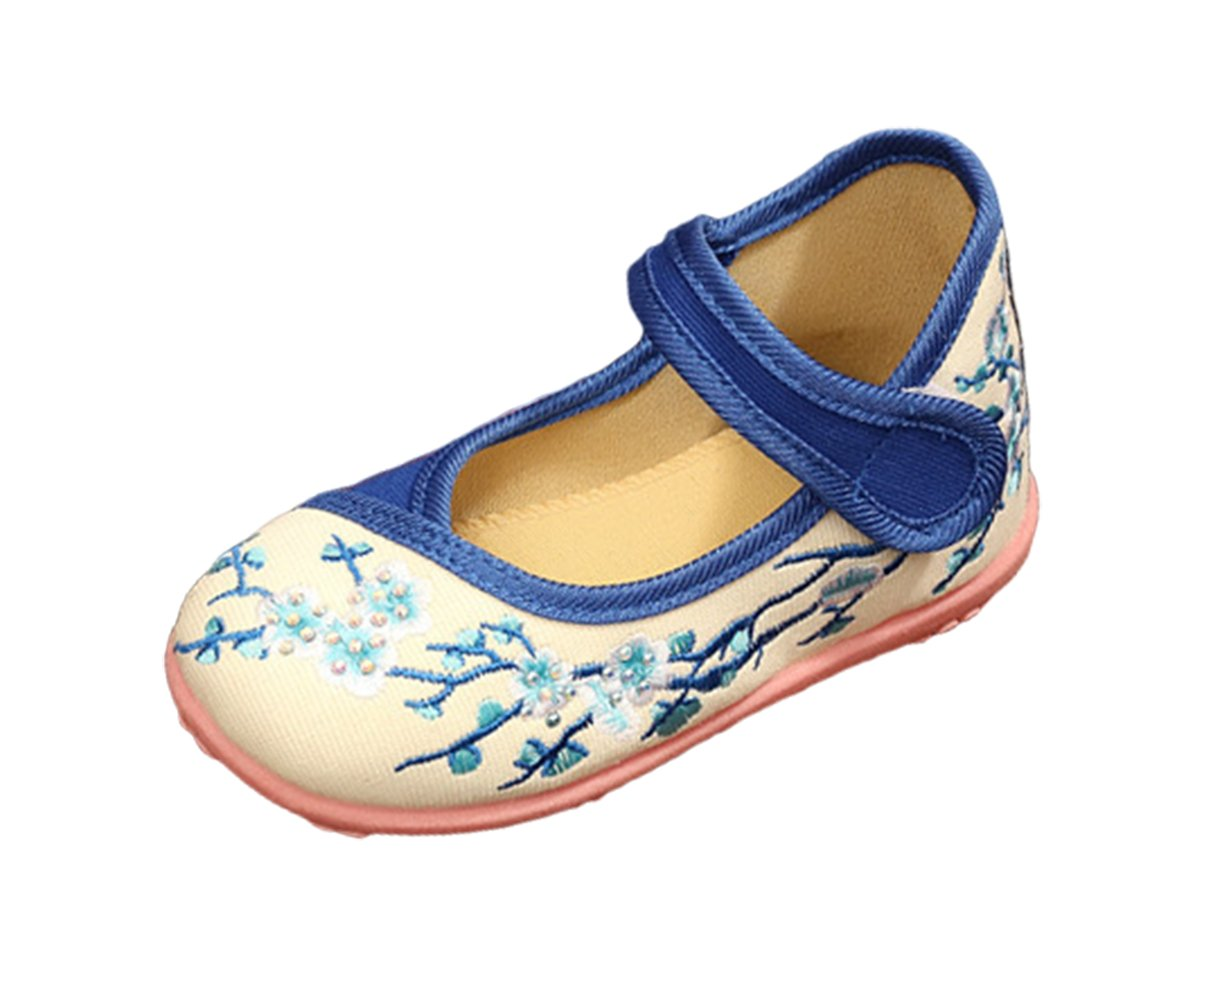 AvaCostume Girls Plum Blossom Embroidery Soft Sole Mary Jane Dancing Shoes, Blue 31